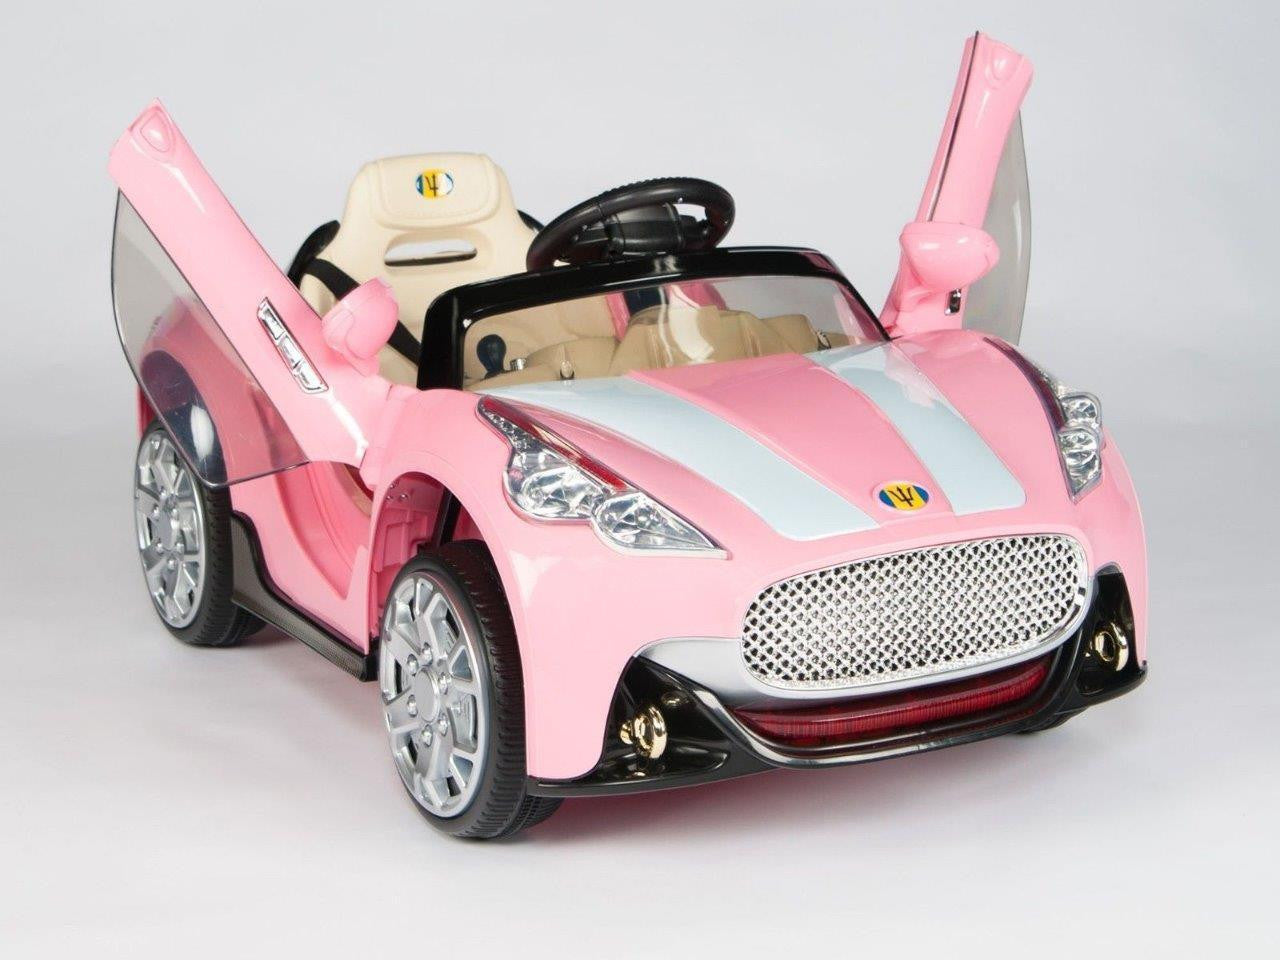 Exotic Maserati Style 12v Remote Control Ride on Coupe W/ Vertical Doors : exotic car doors - pezcame.com